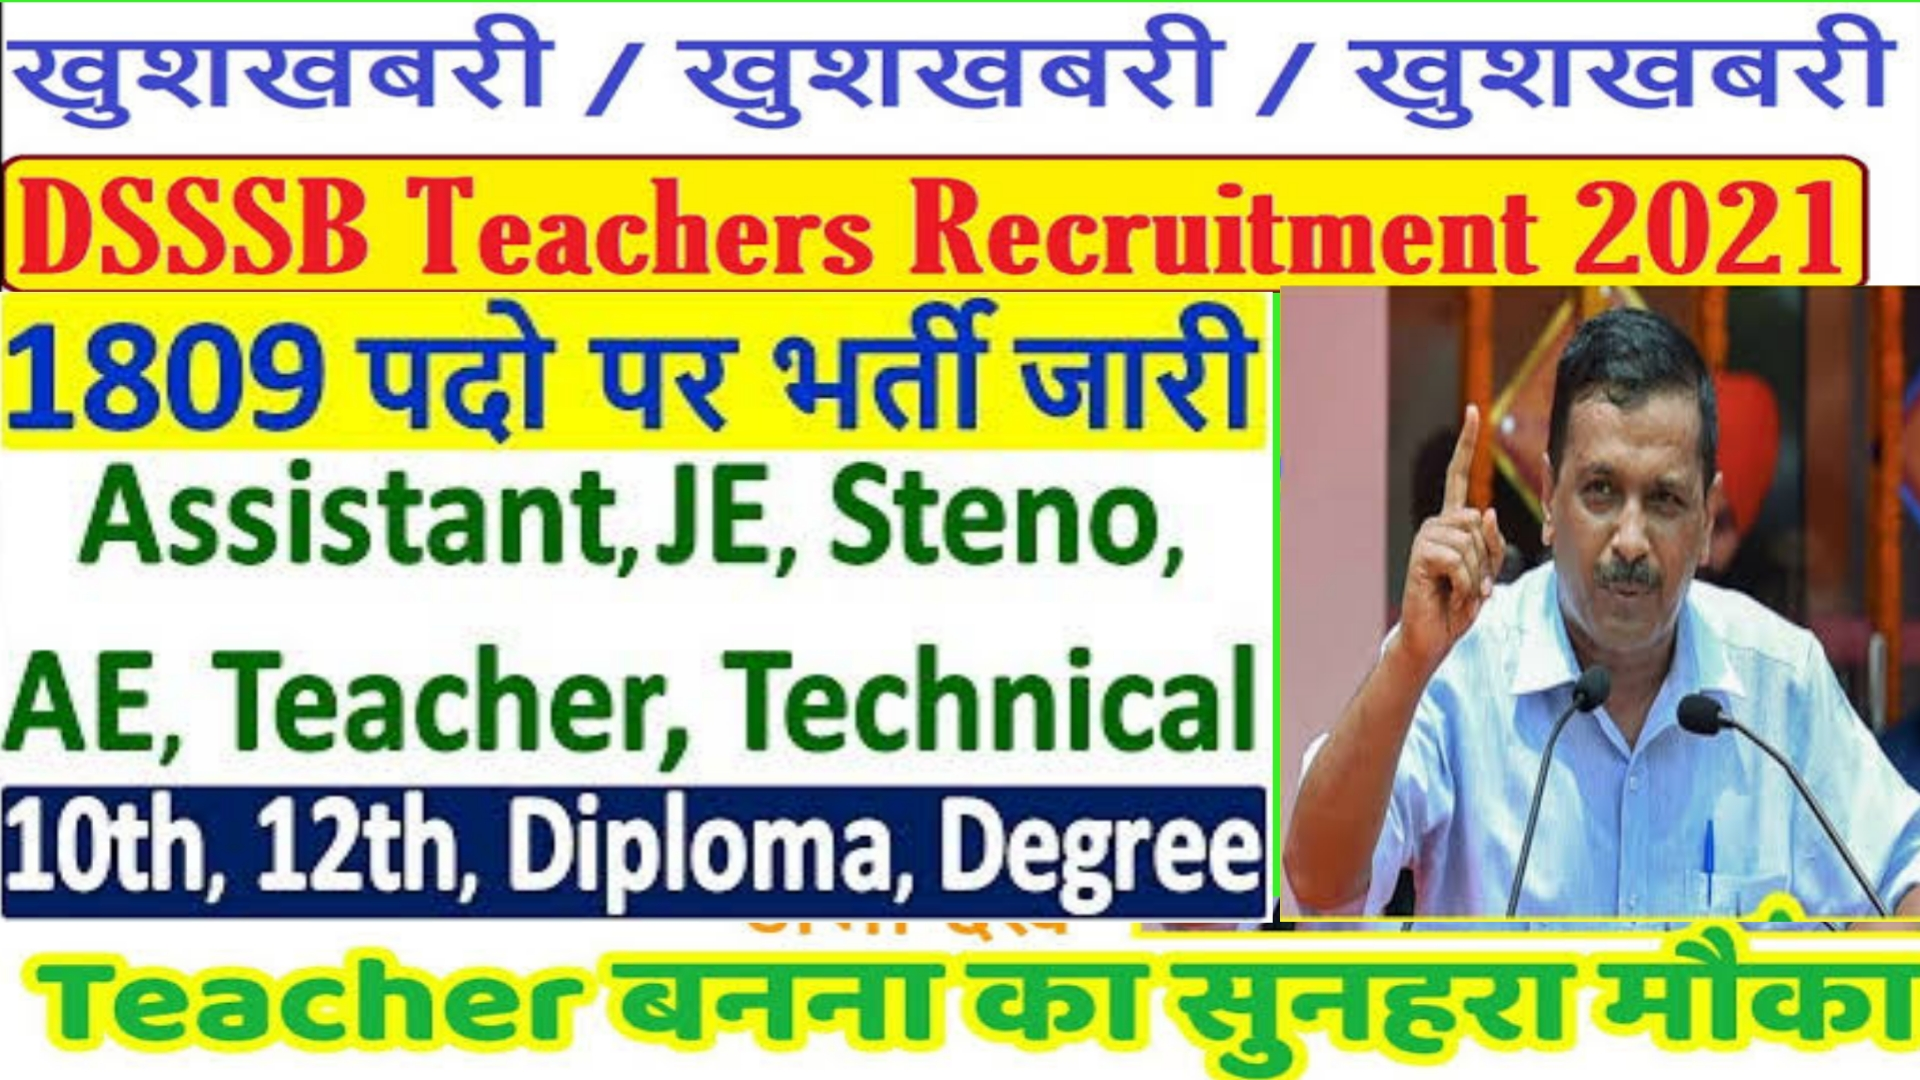 DSSSB Teaching Recruitment 2021